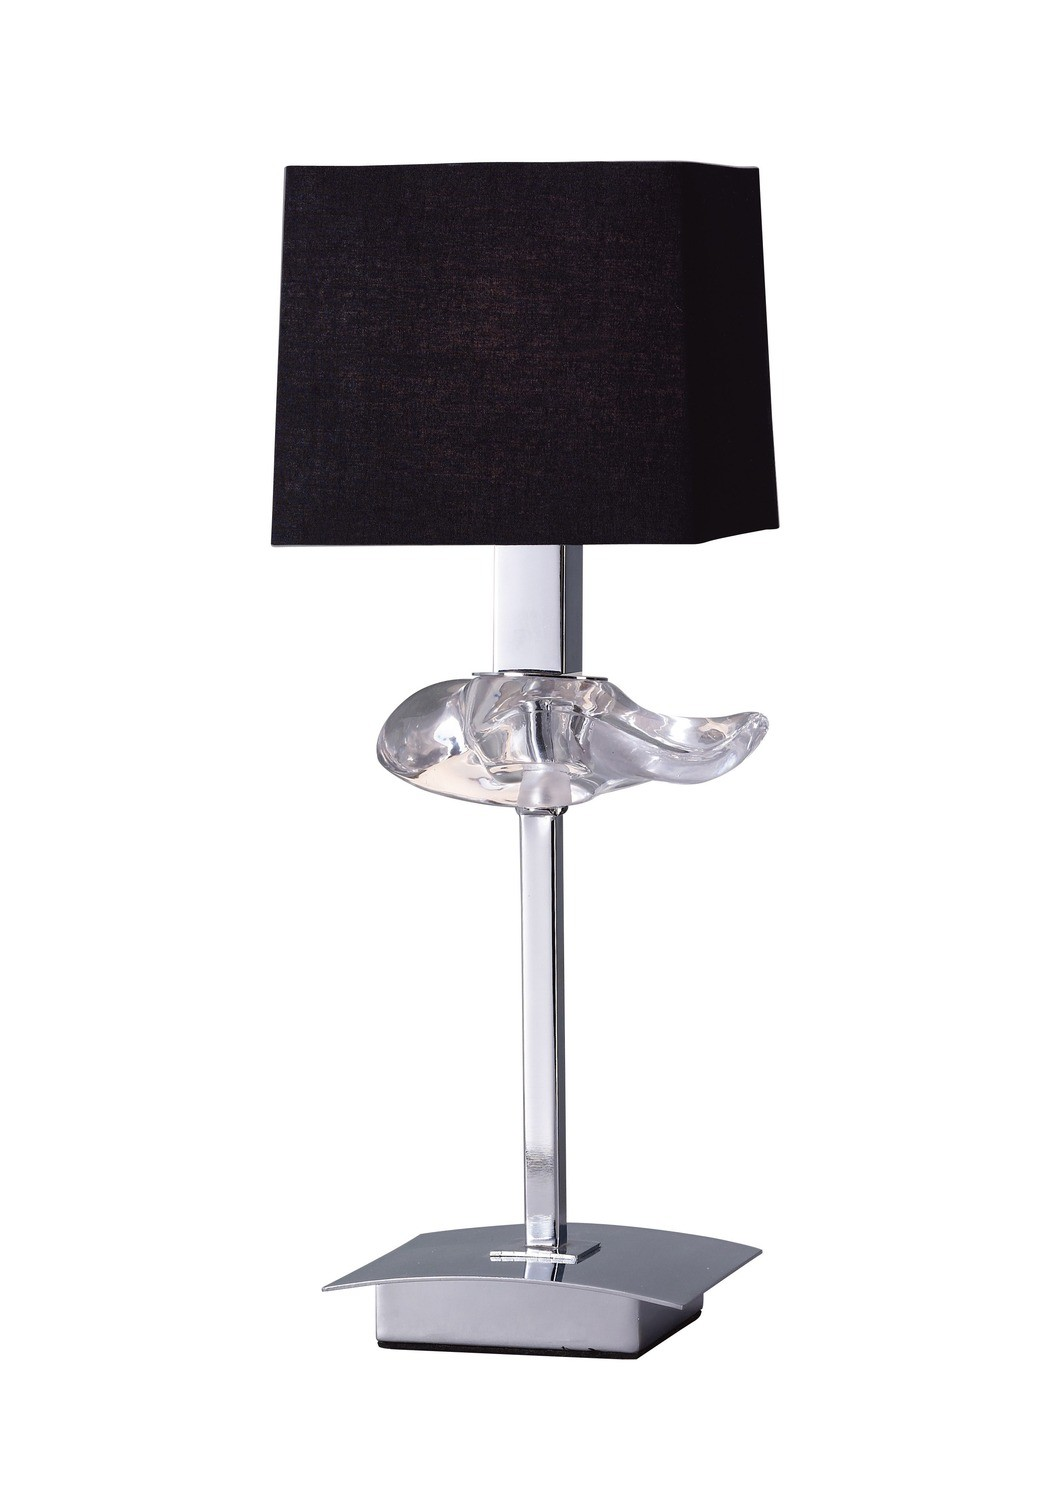 Akira Table Lamp 1 Light E14, Polished Chrome With Black Shade